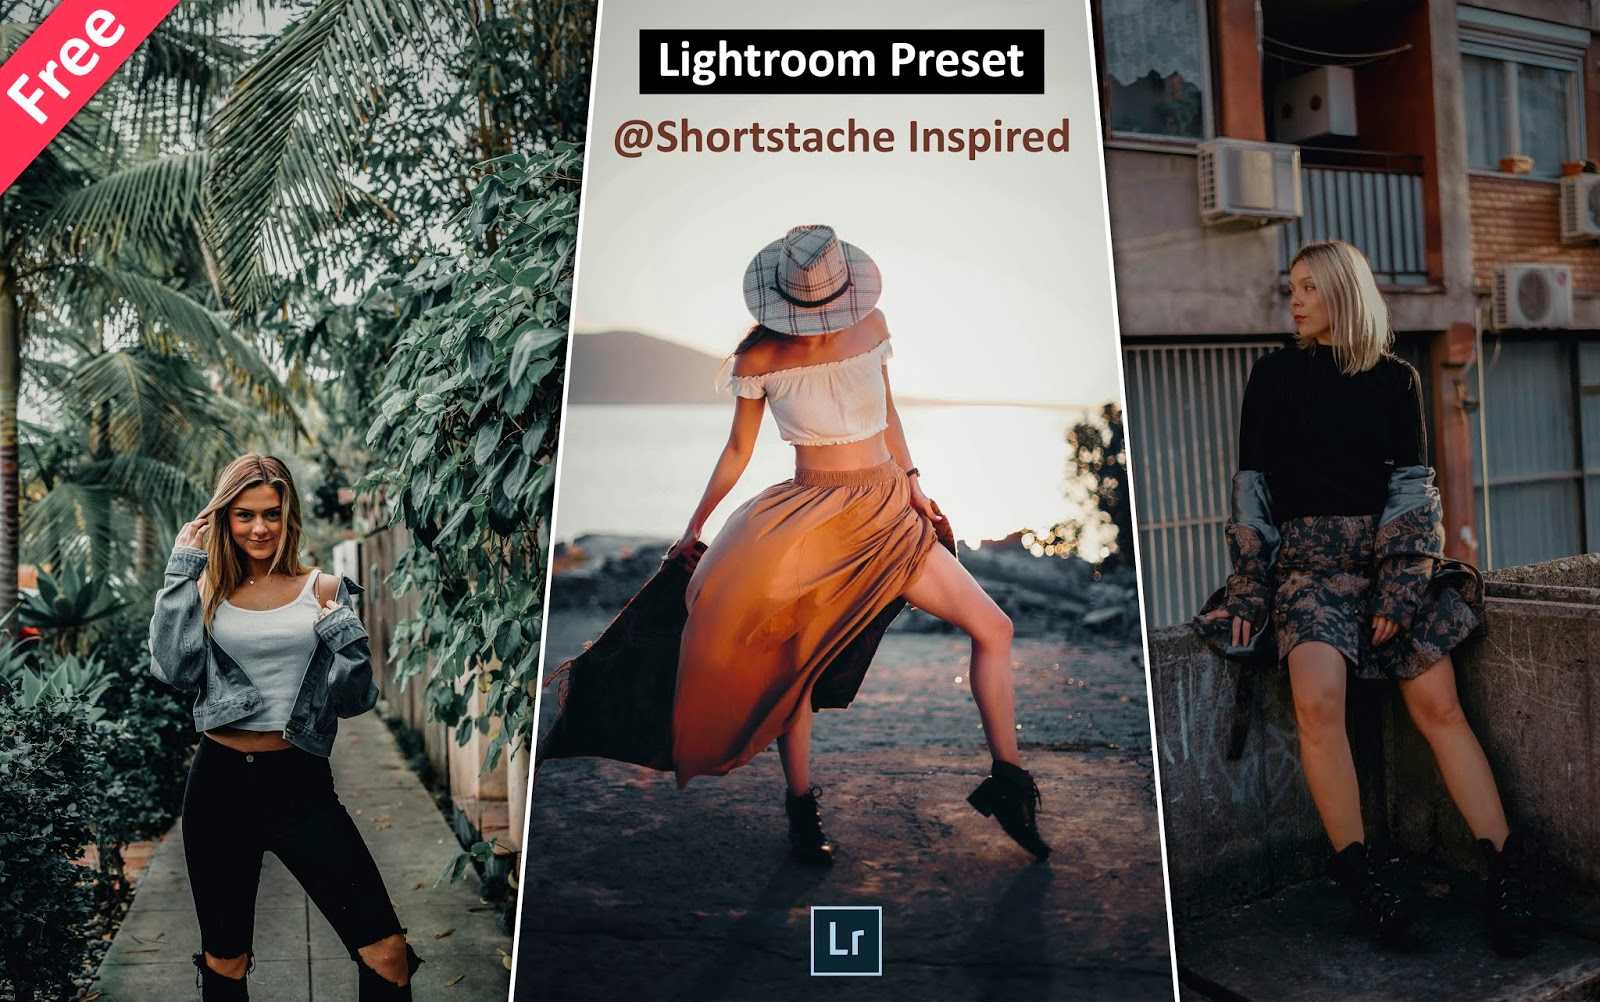 Download Shortstache Inspired Lightroom Presets for Free | How to Edit Photos Like @shortstache in Lightroom